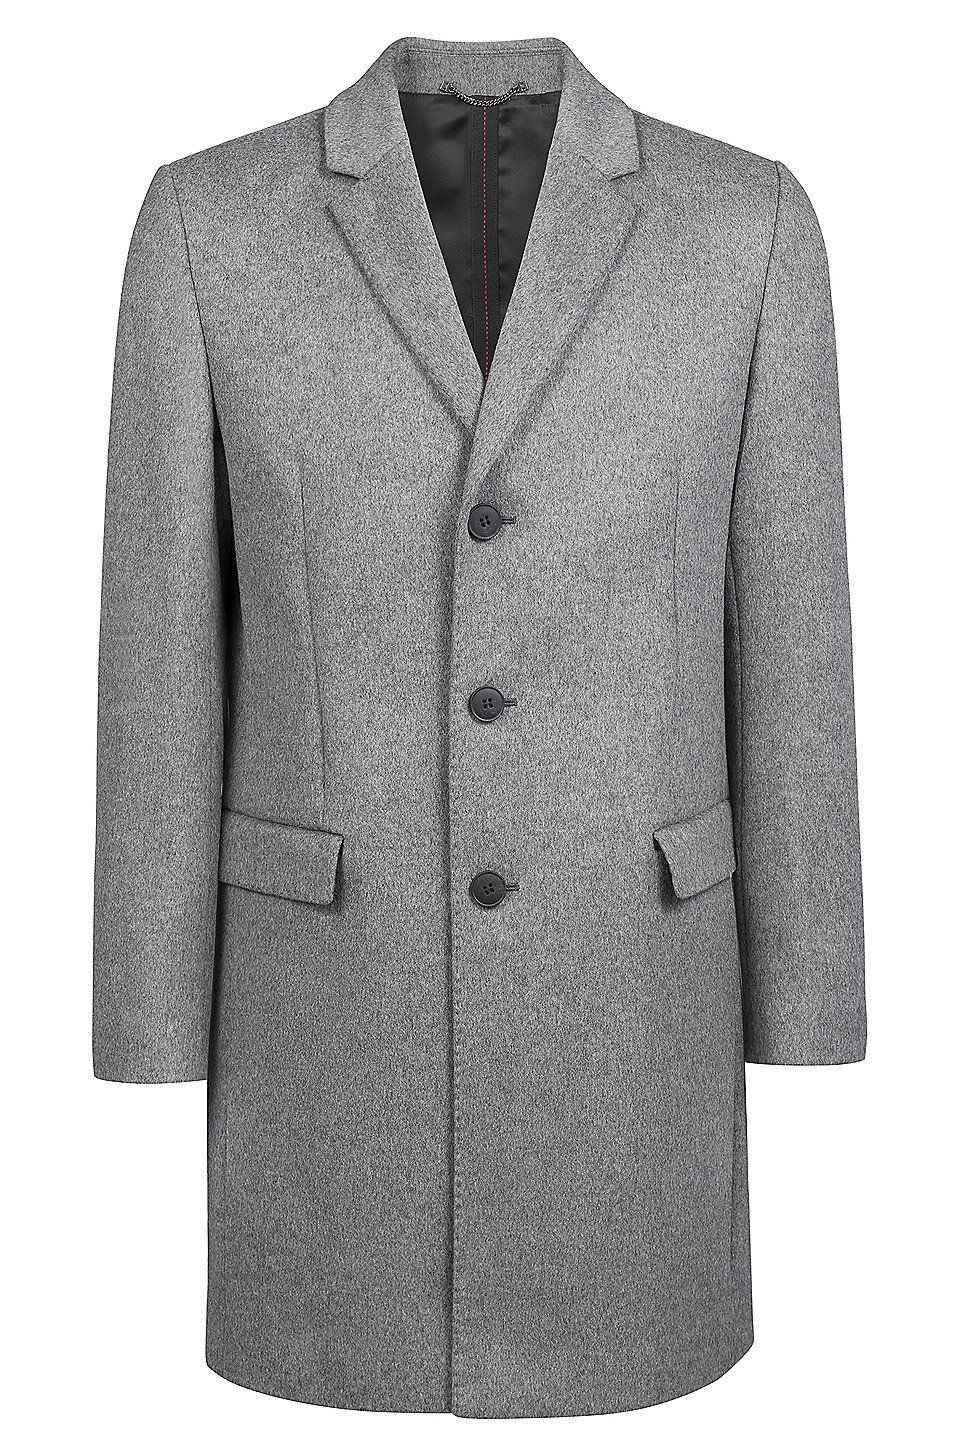 a3a58bafaa9 HUGO BOSS Slim-fit coat in melange virgin wool with cashmere - Grey Casual  Coats from HUGO for Men in the official HUGO BOSS Online Store free shipping